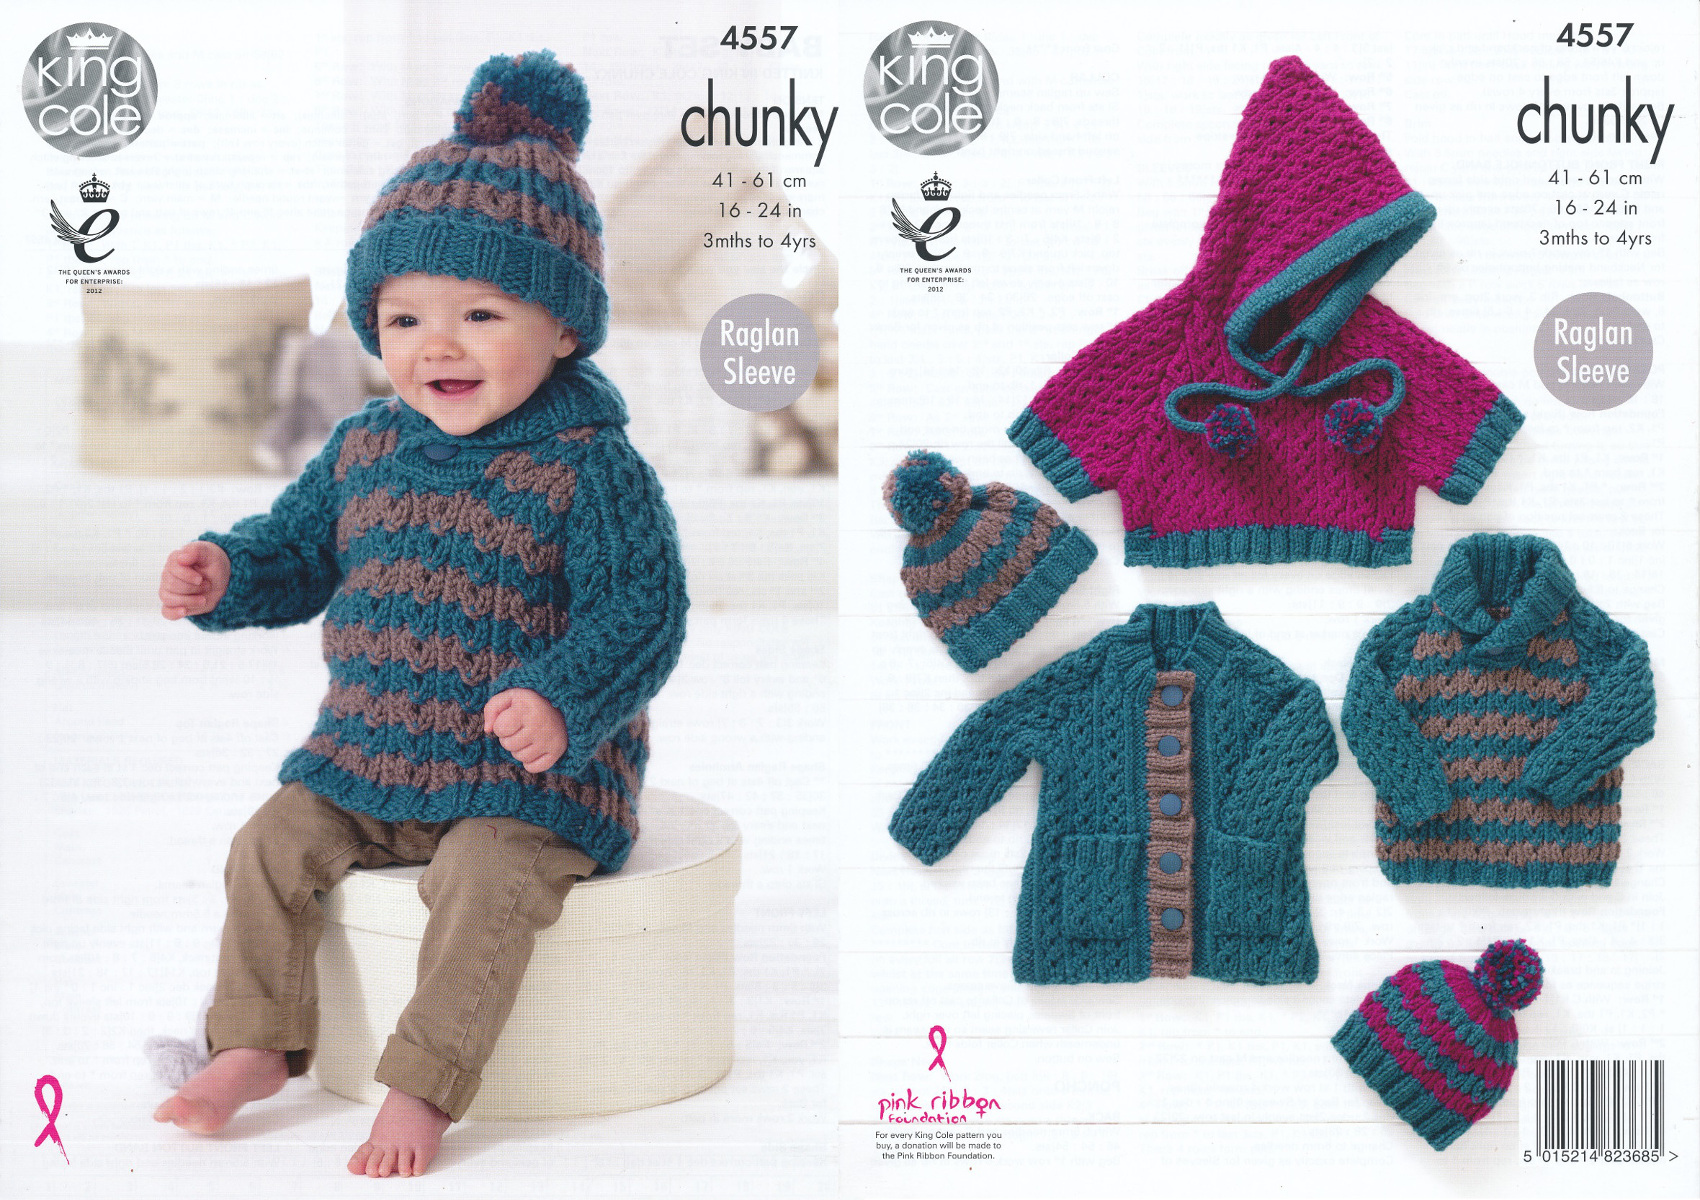 King Cole Baby Chunky Knitting Pattern Raglan Sleeve Coat Jumper